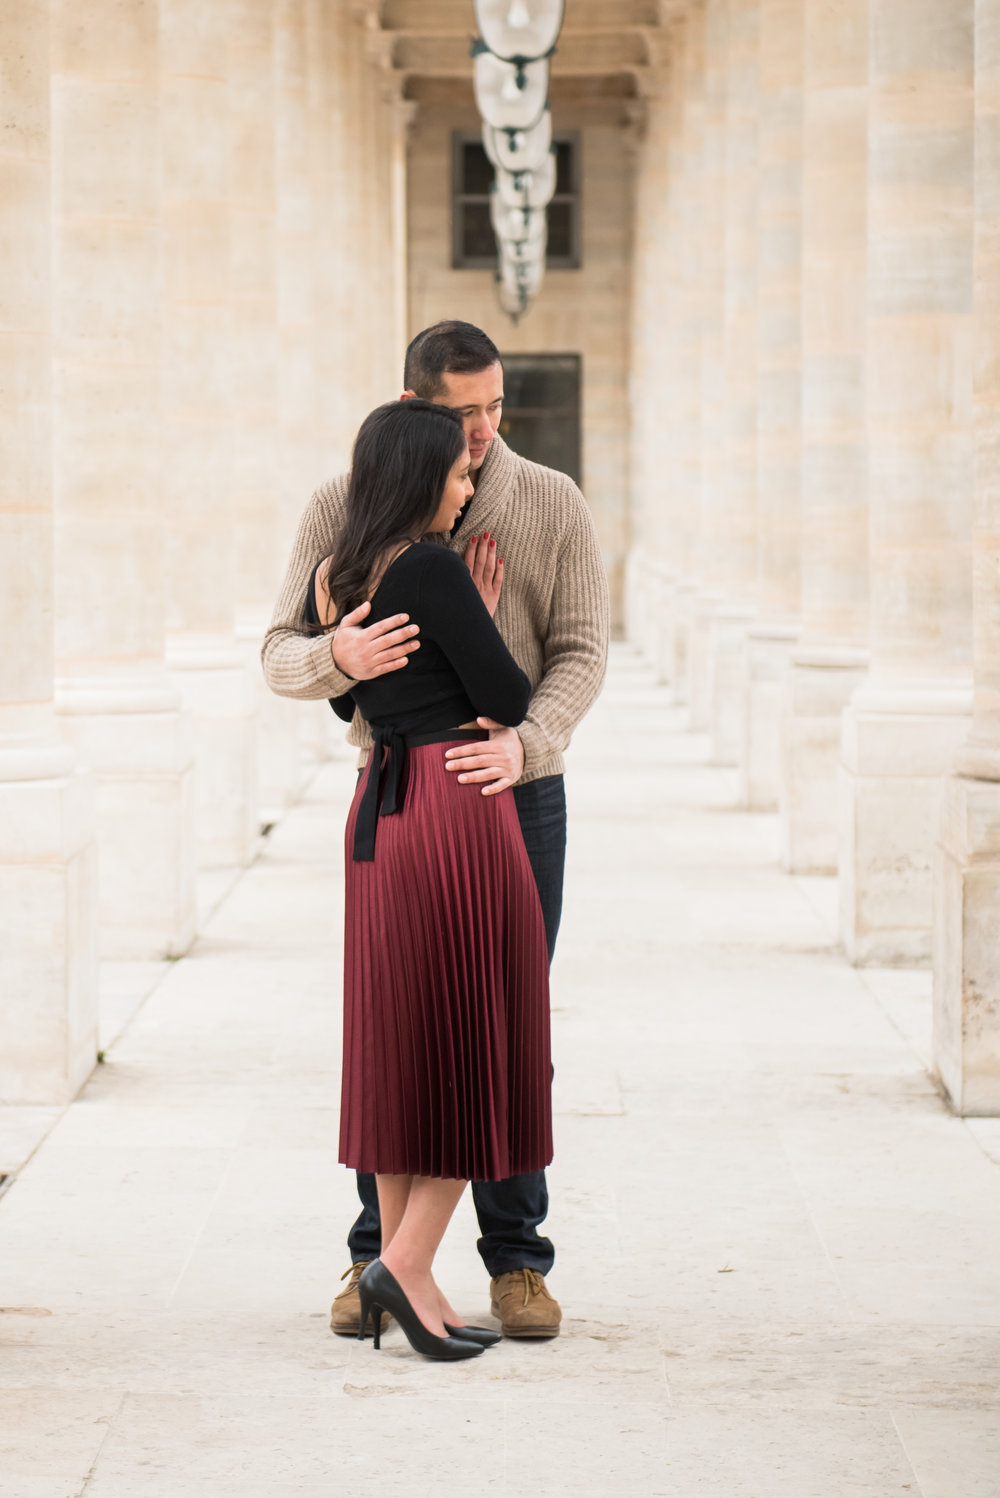 Couples Engagement Photoshoot at Eiffel Tower & Jardin Du Palais